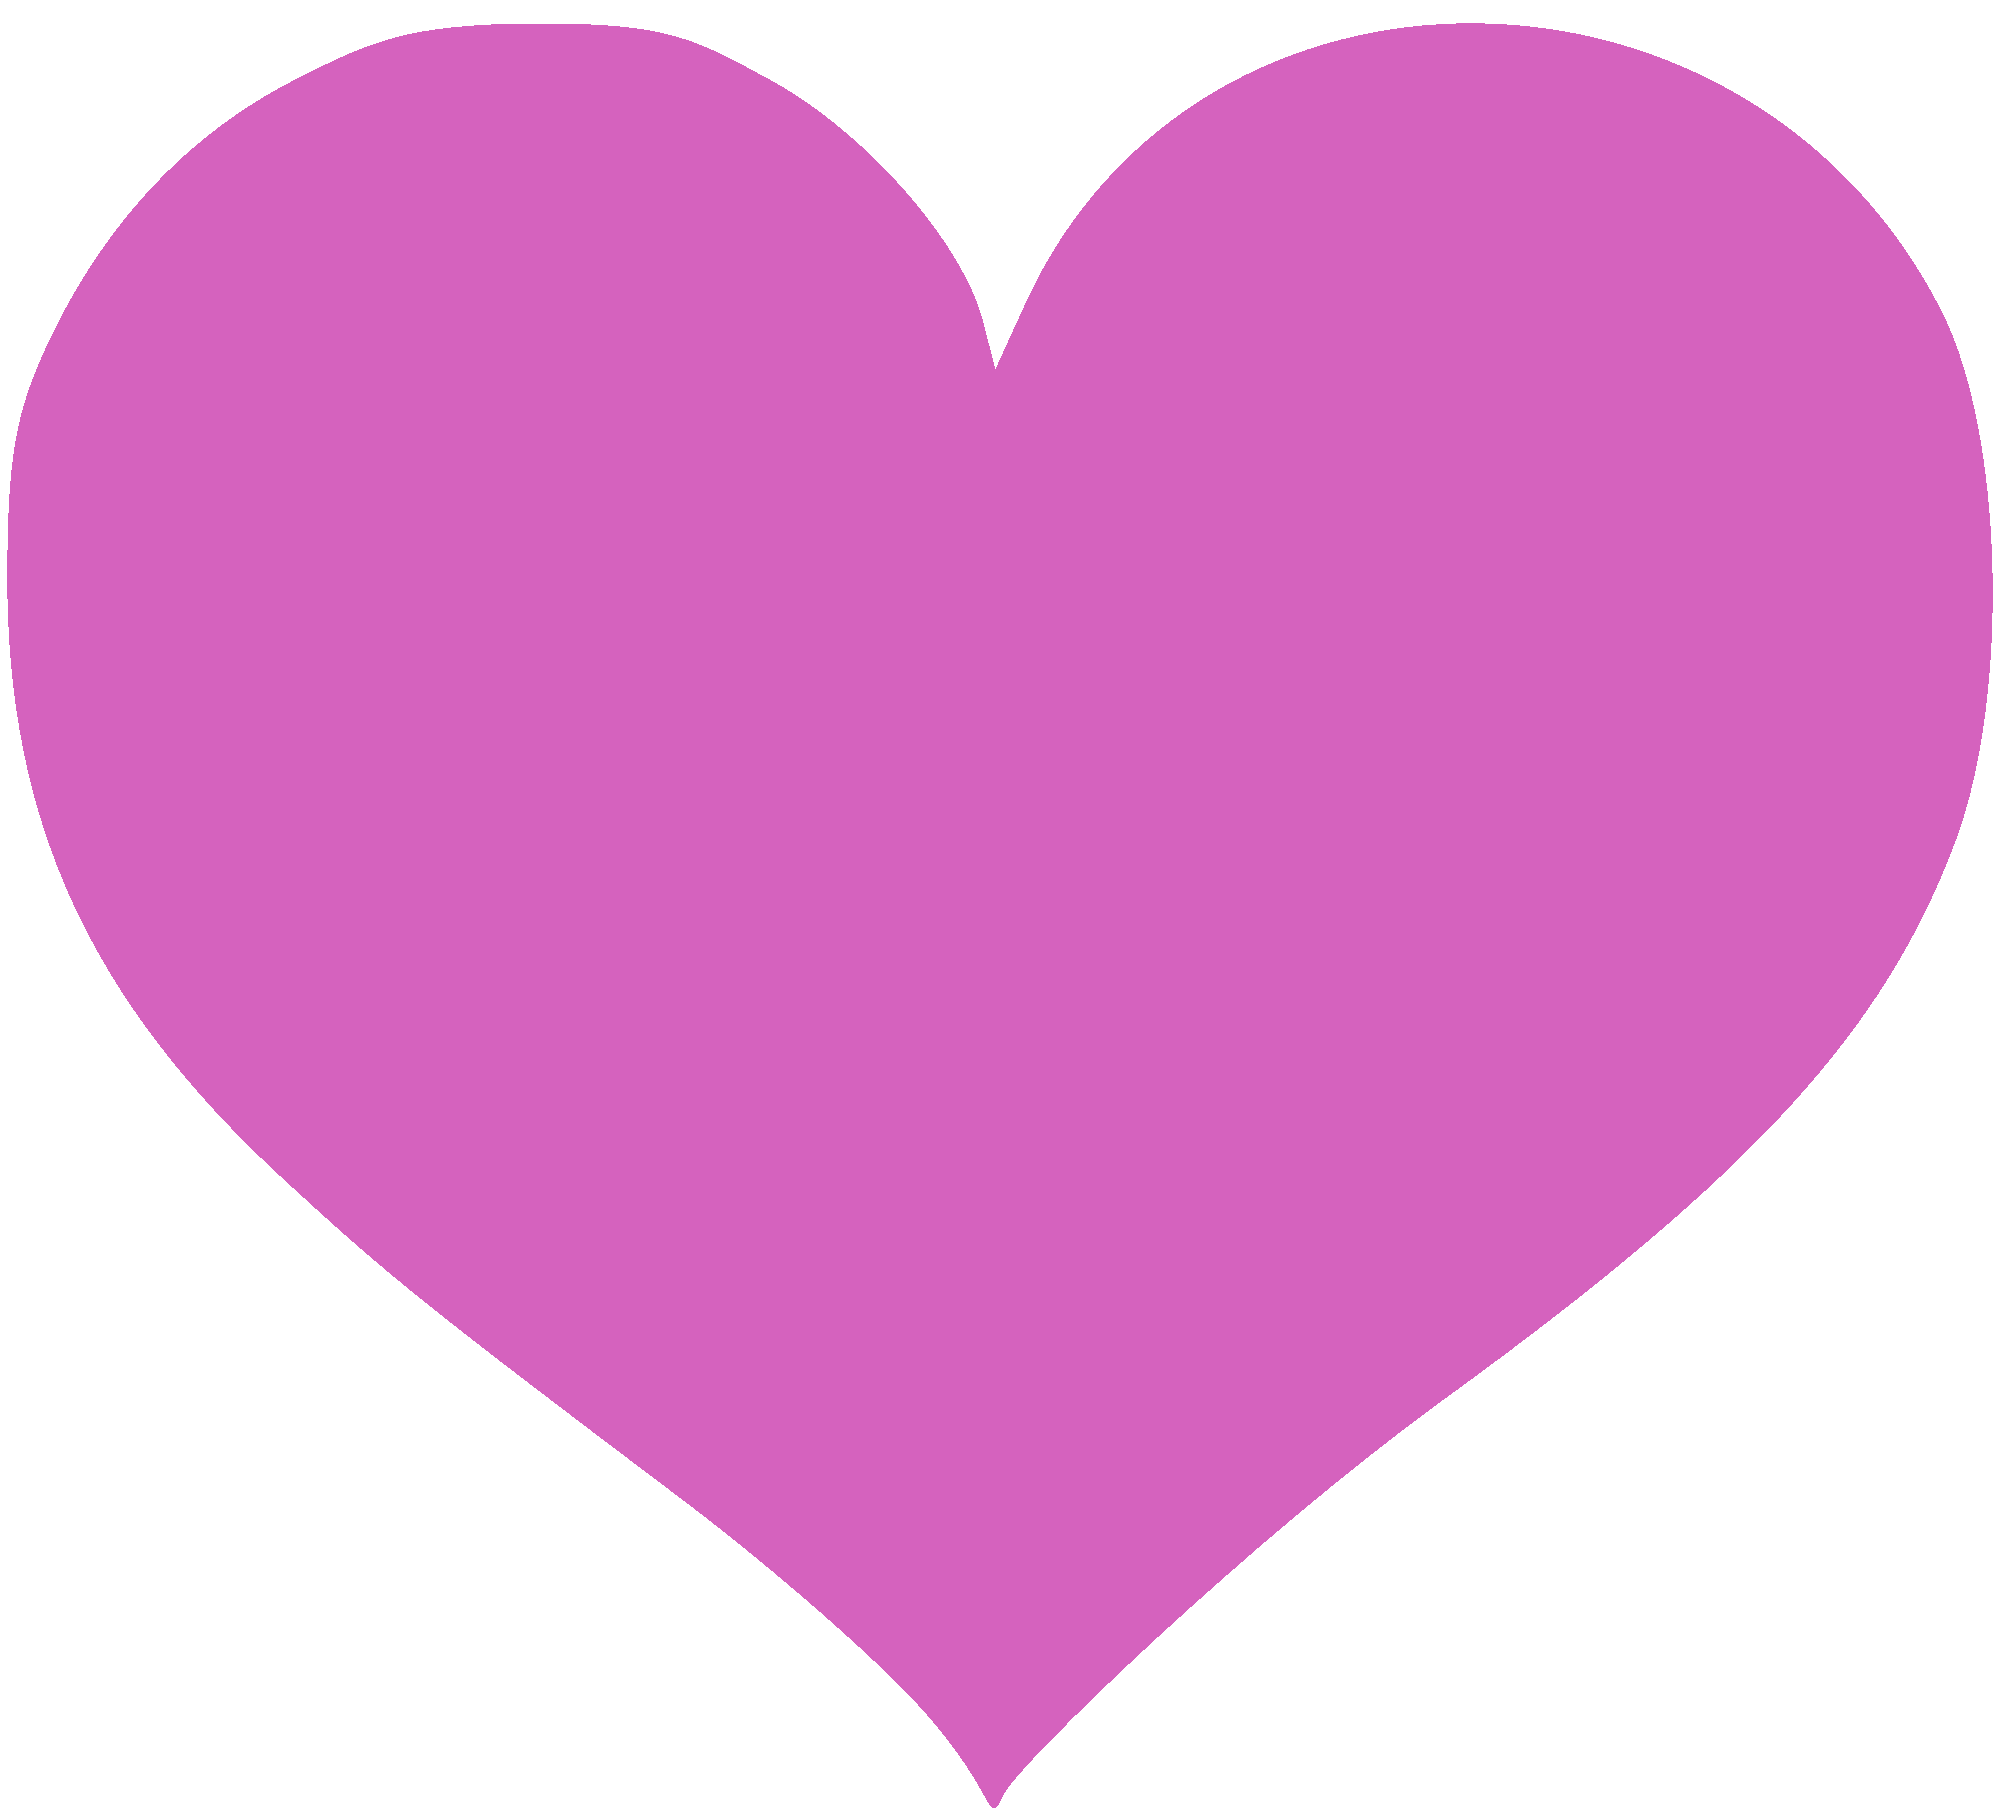 Heart, png. Heart pose heartpng